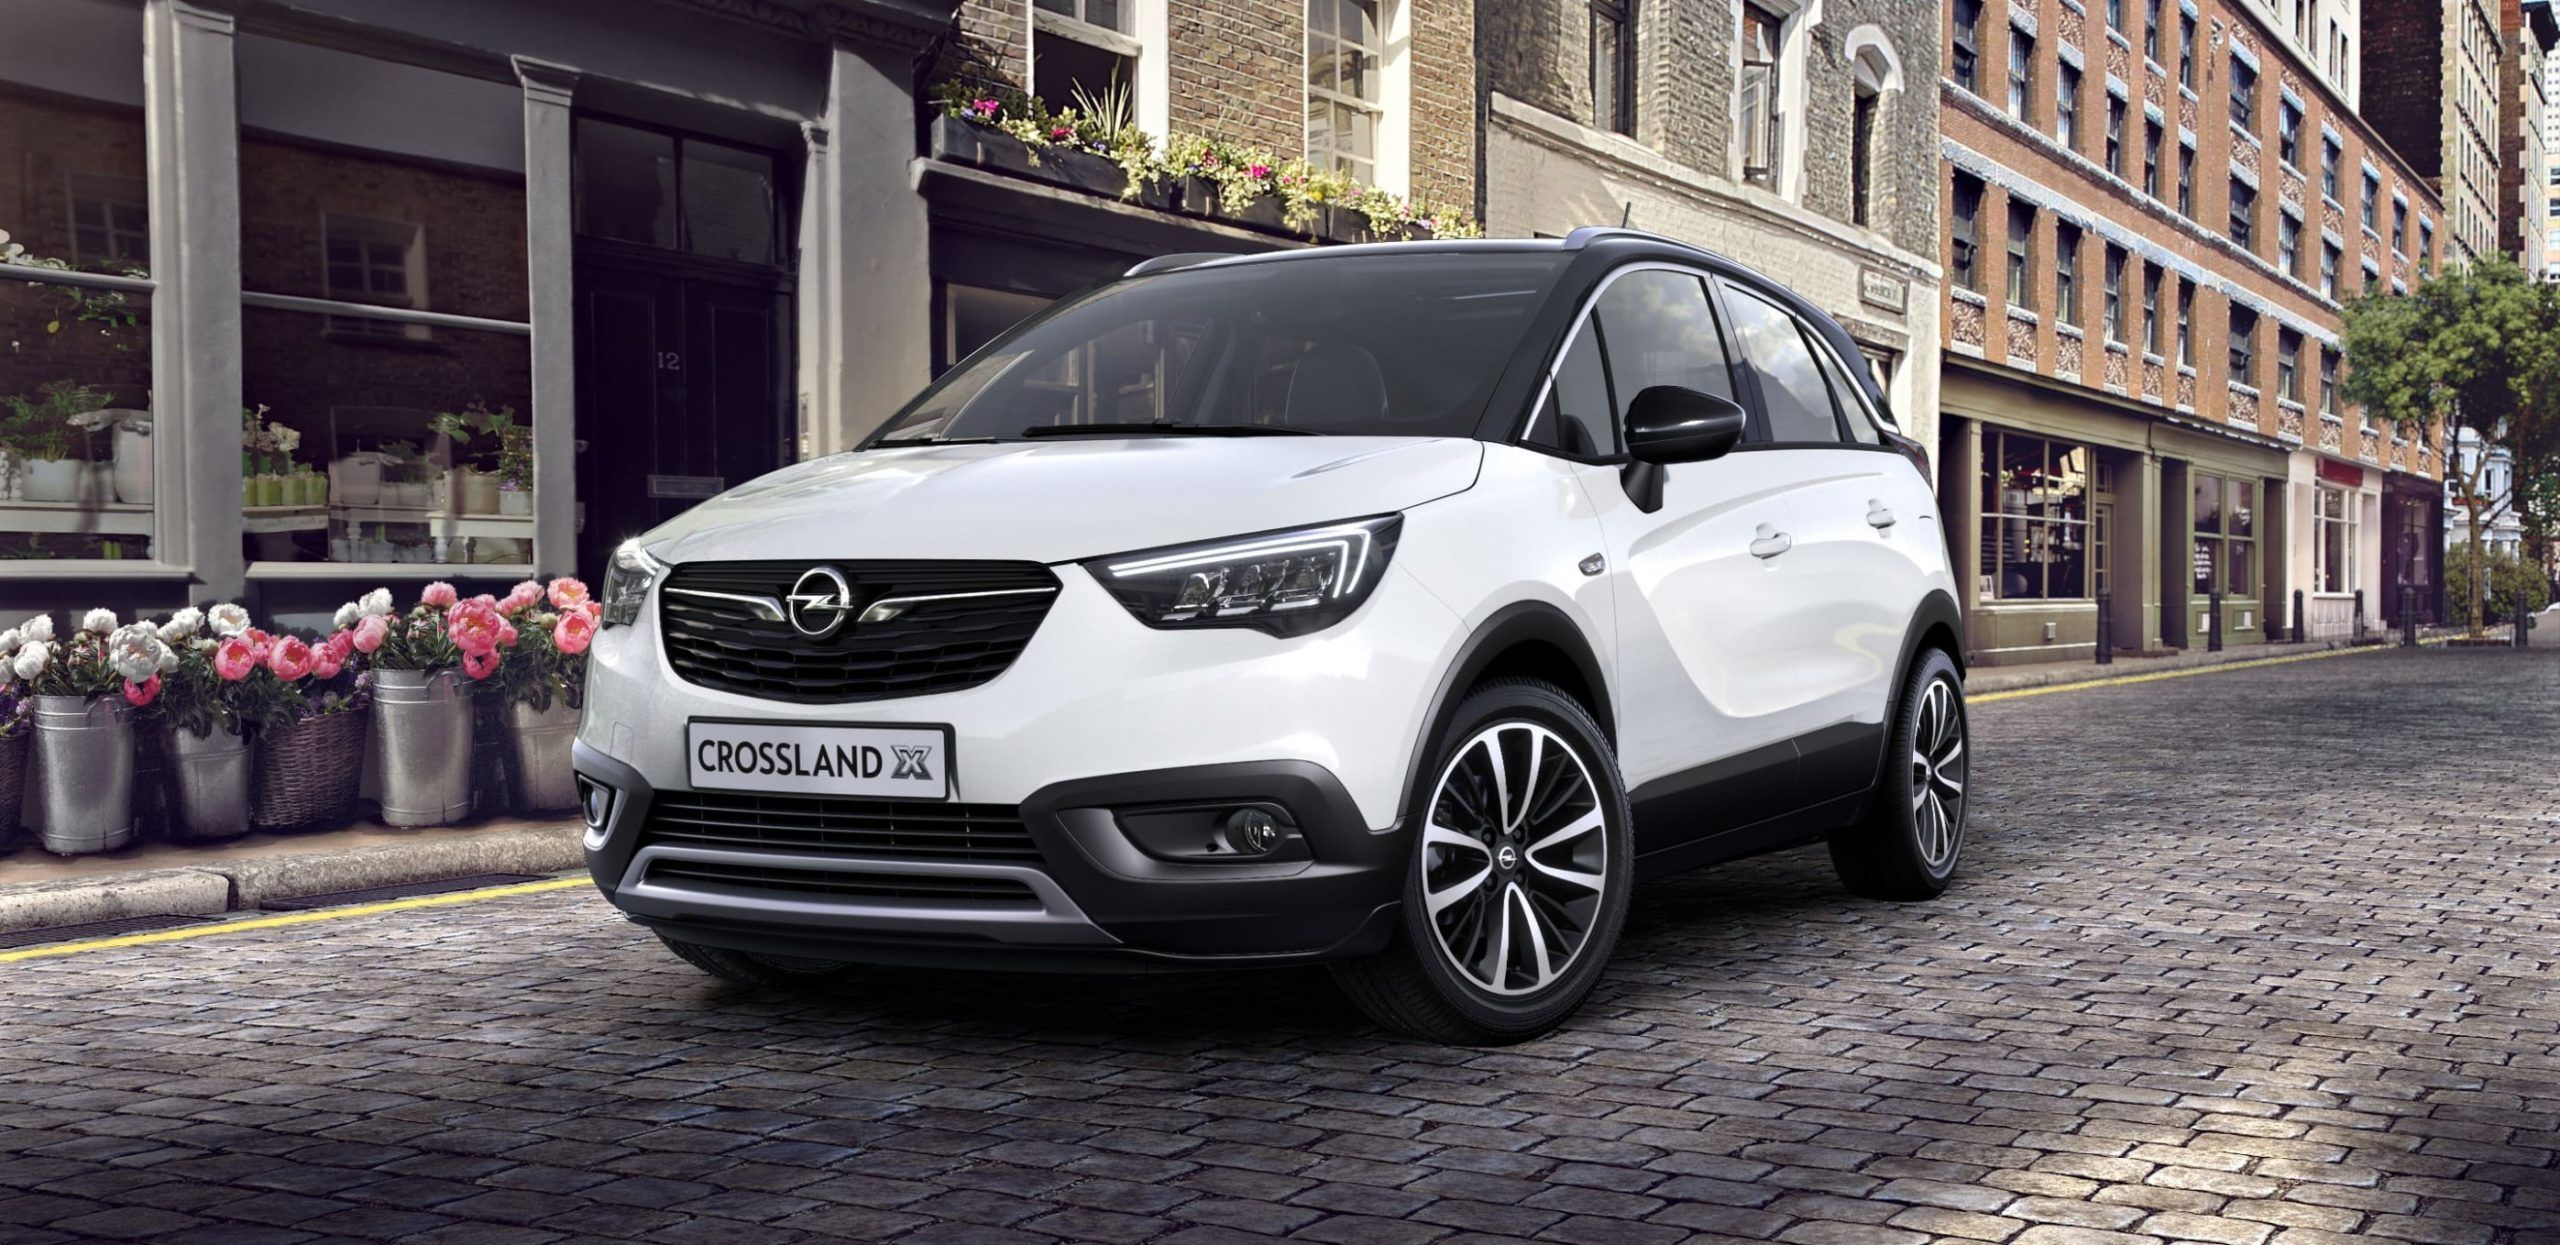 This Story Behind 2020 Opel Jip Design Will Haunt You Forever